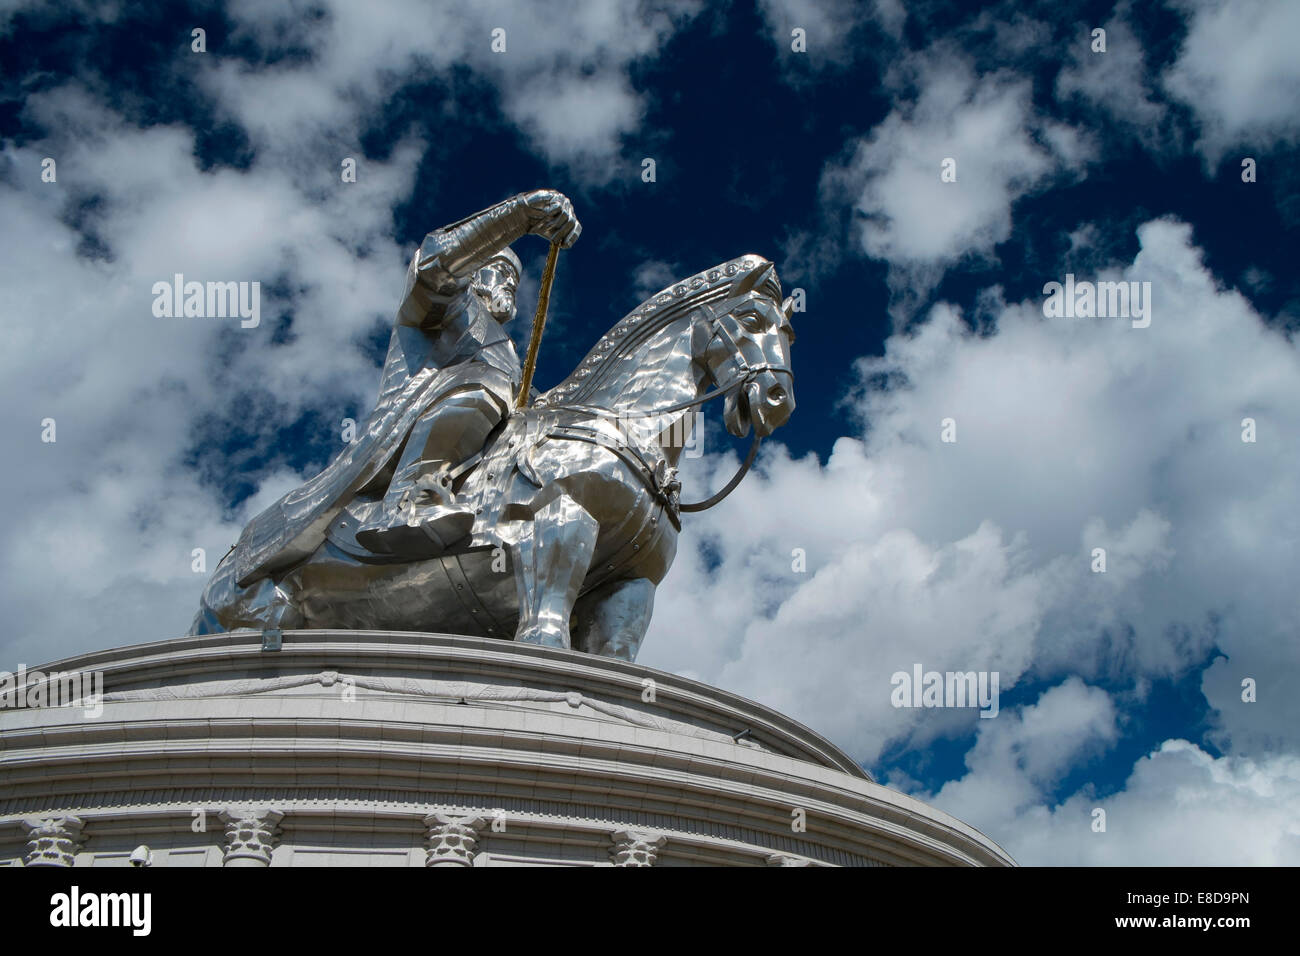 Genghis Khan Photos Genghis Khan Images Page 4 Alamy